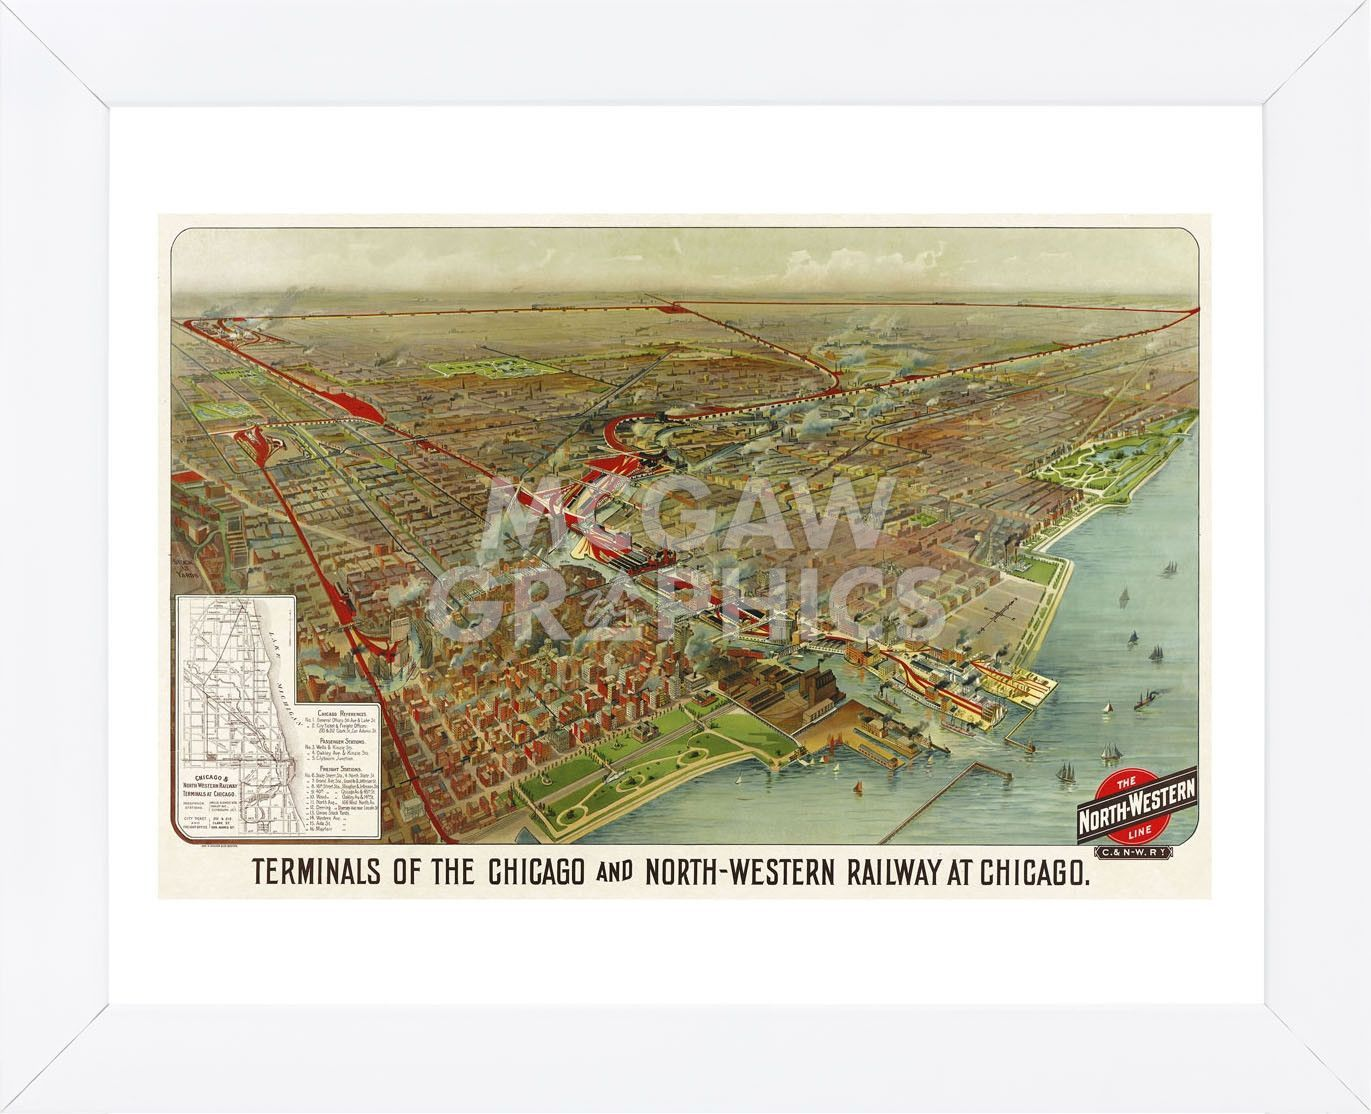 Terminals of the Chicago and North-Western Railway at Chicago, 1902 (Framed)